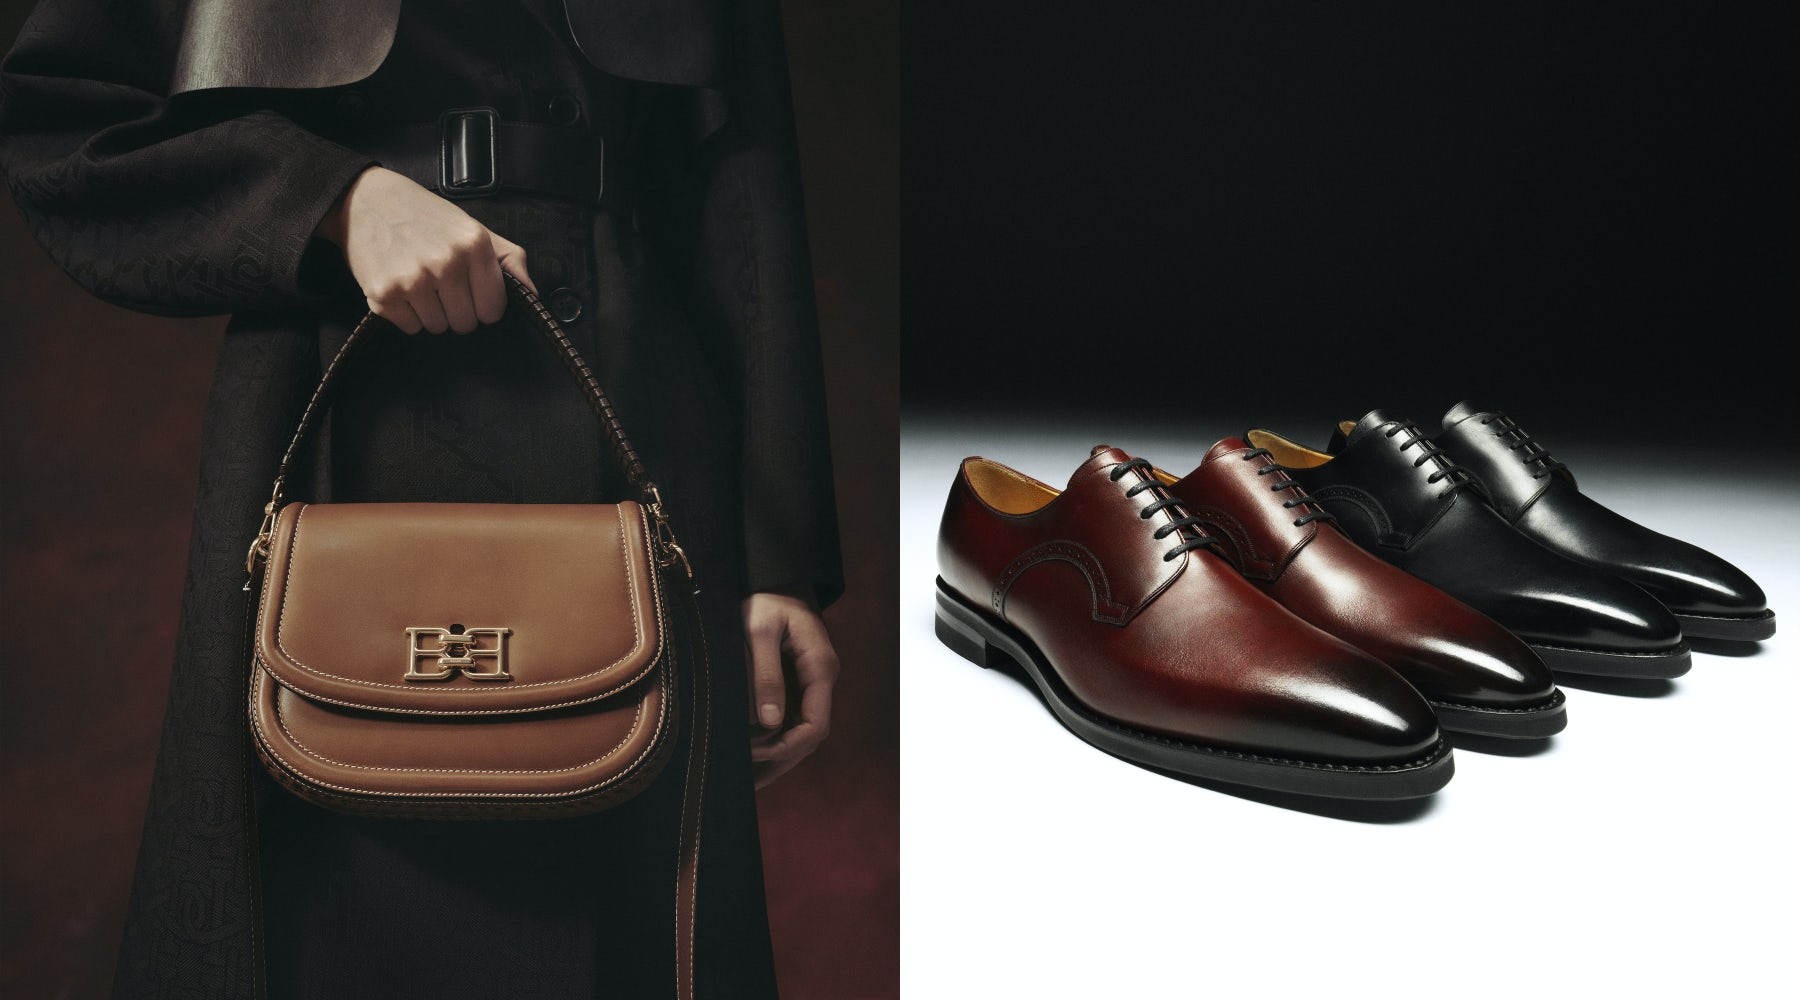 Bally's new Beckie bag and classic